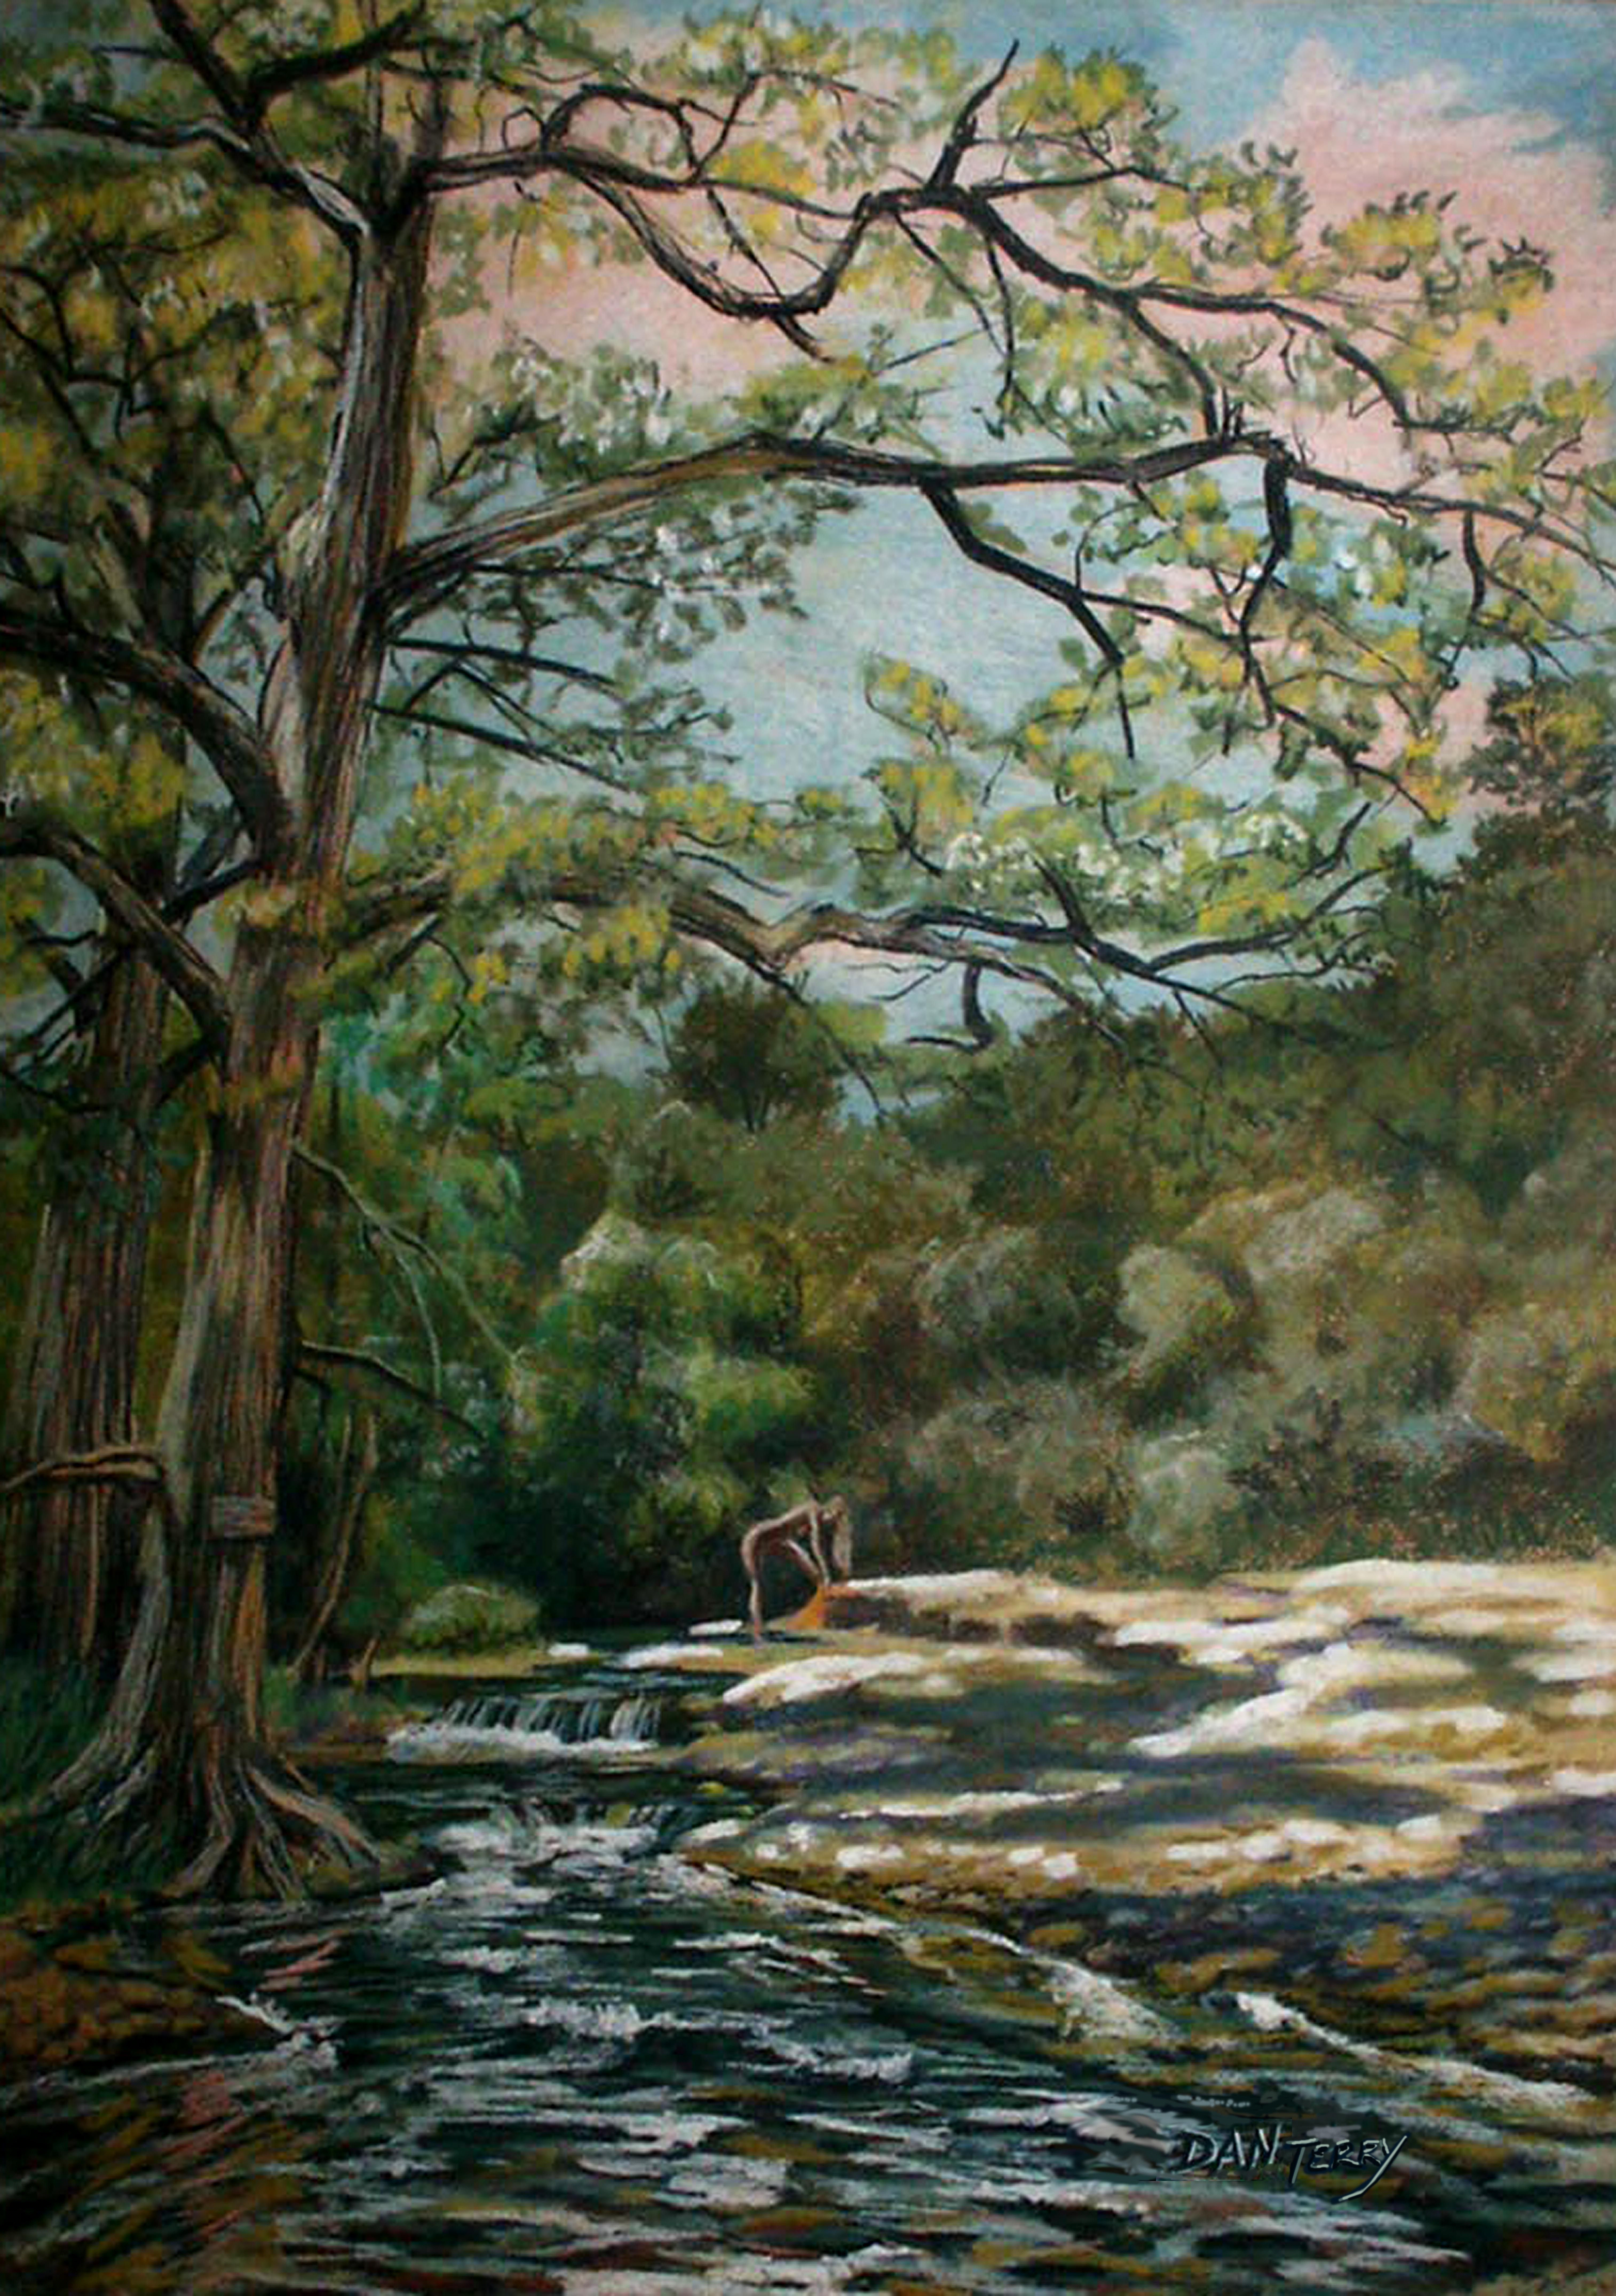 Onion creek texas landscape pastel on rag board prints available in a range of sizes and prices at